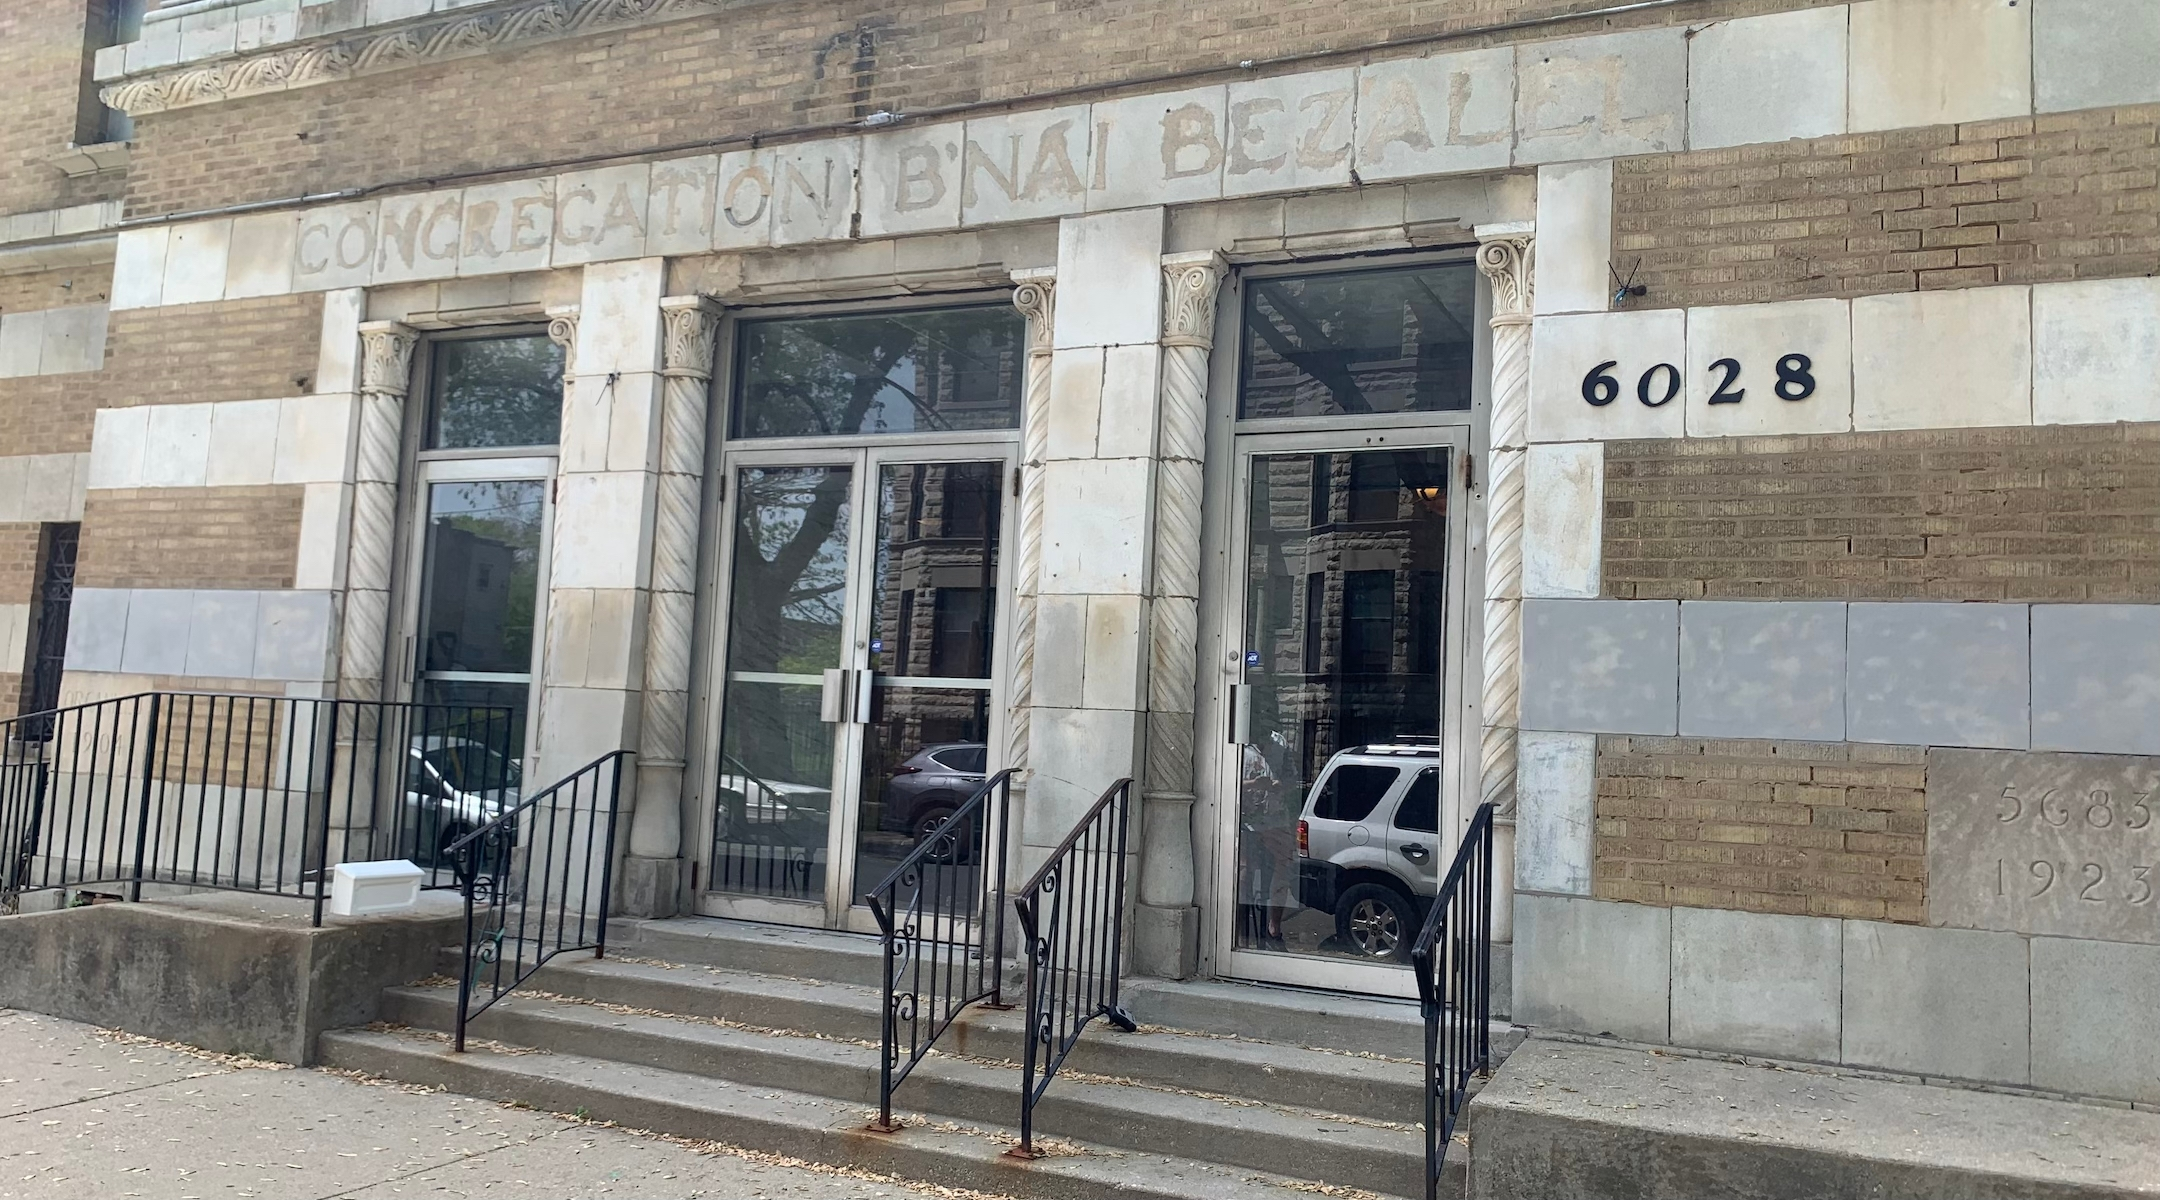 Chicago South Side congregation to be rebuilt as cultural center